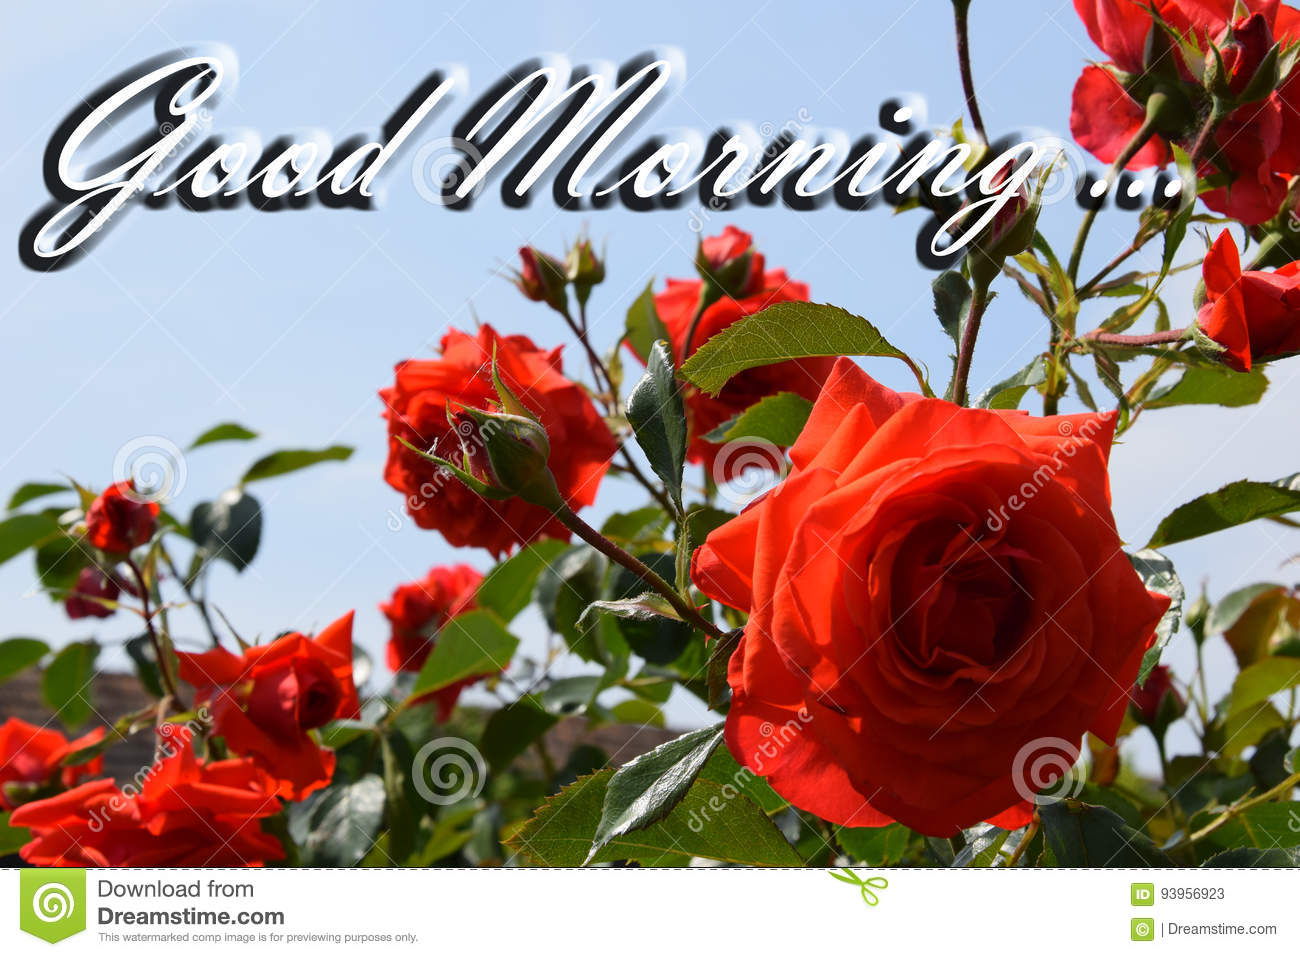 3 835 Morning Quote Photos Free Royalty Free Stock Photos From Dreamstime